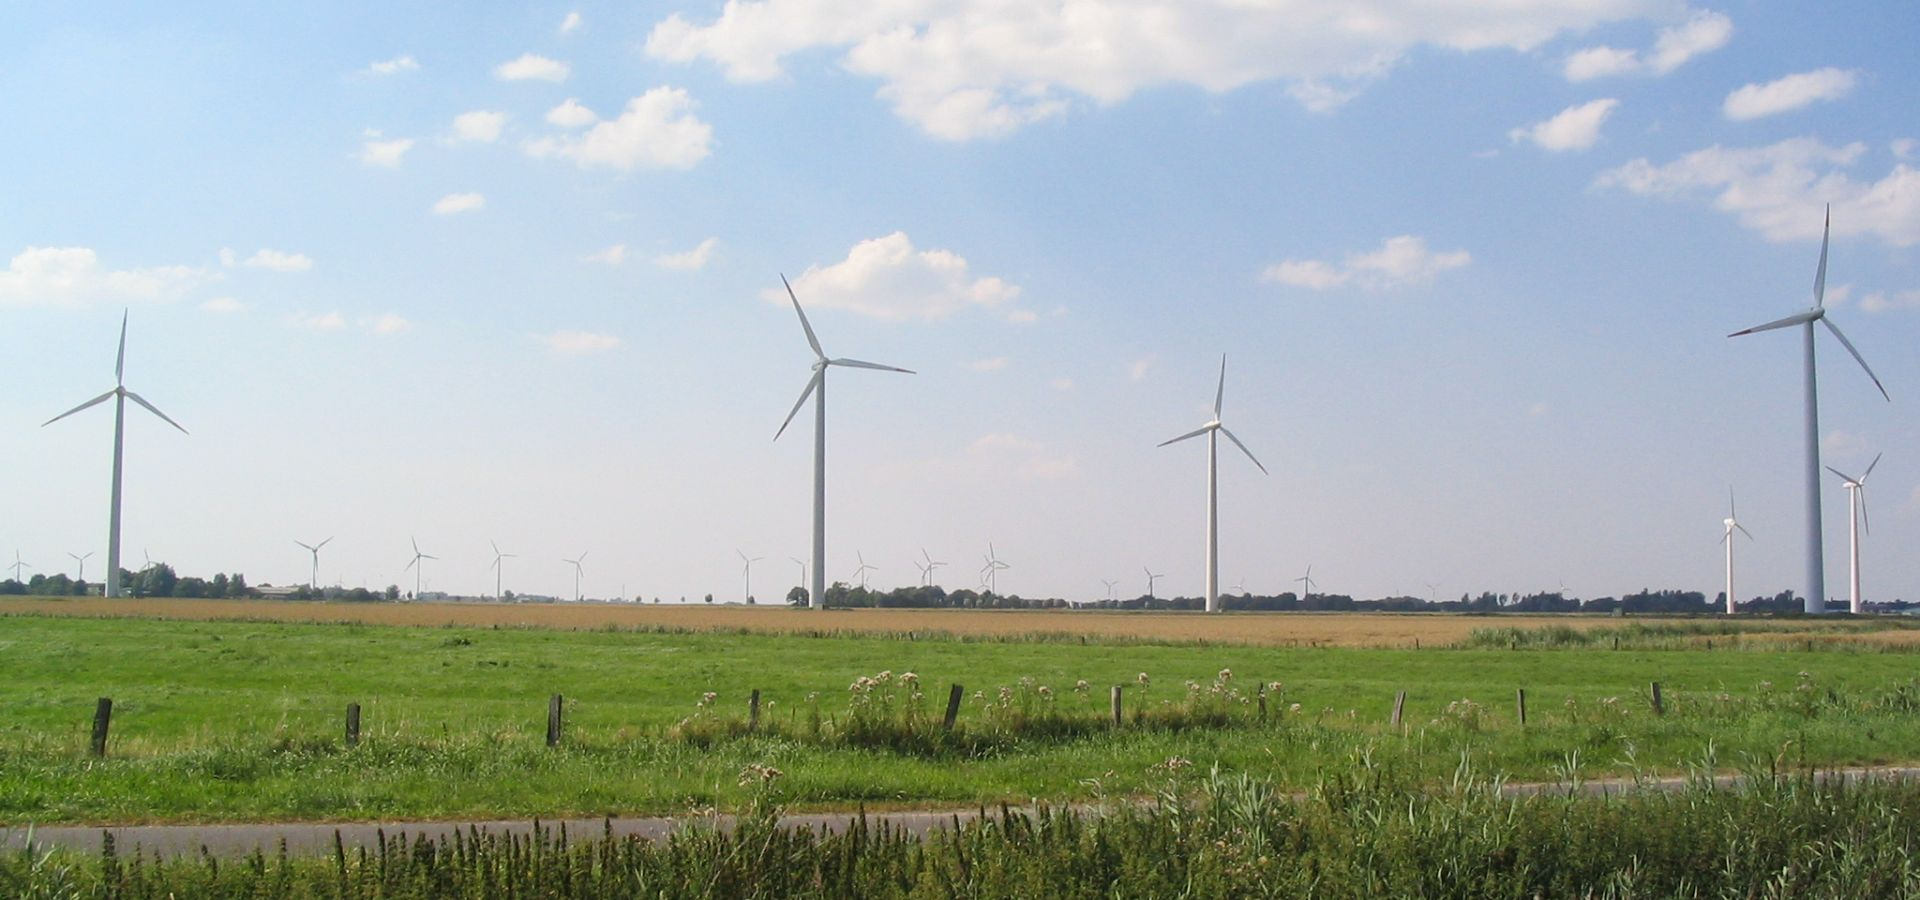 A grassland and windmills